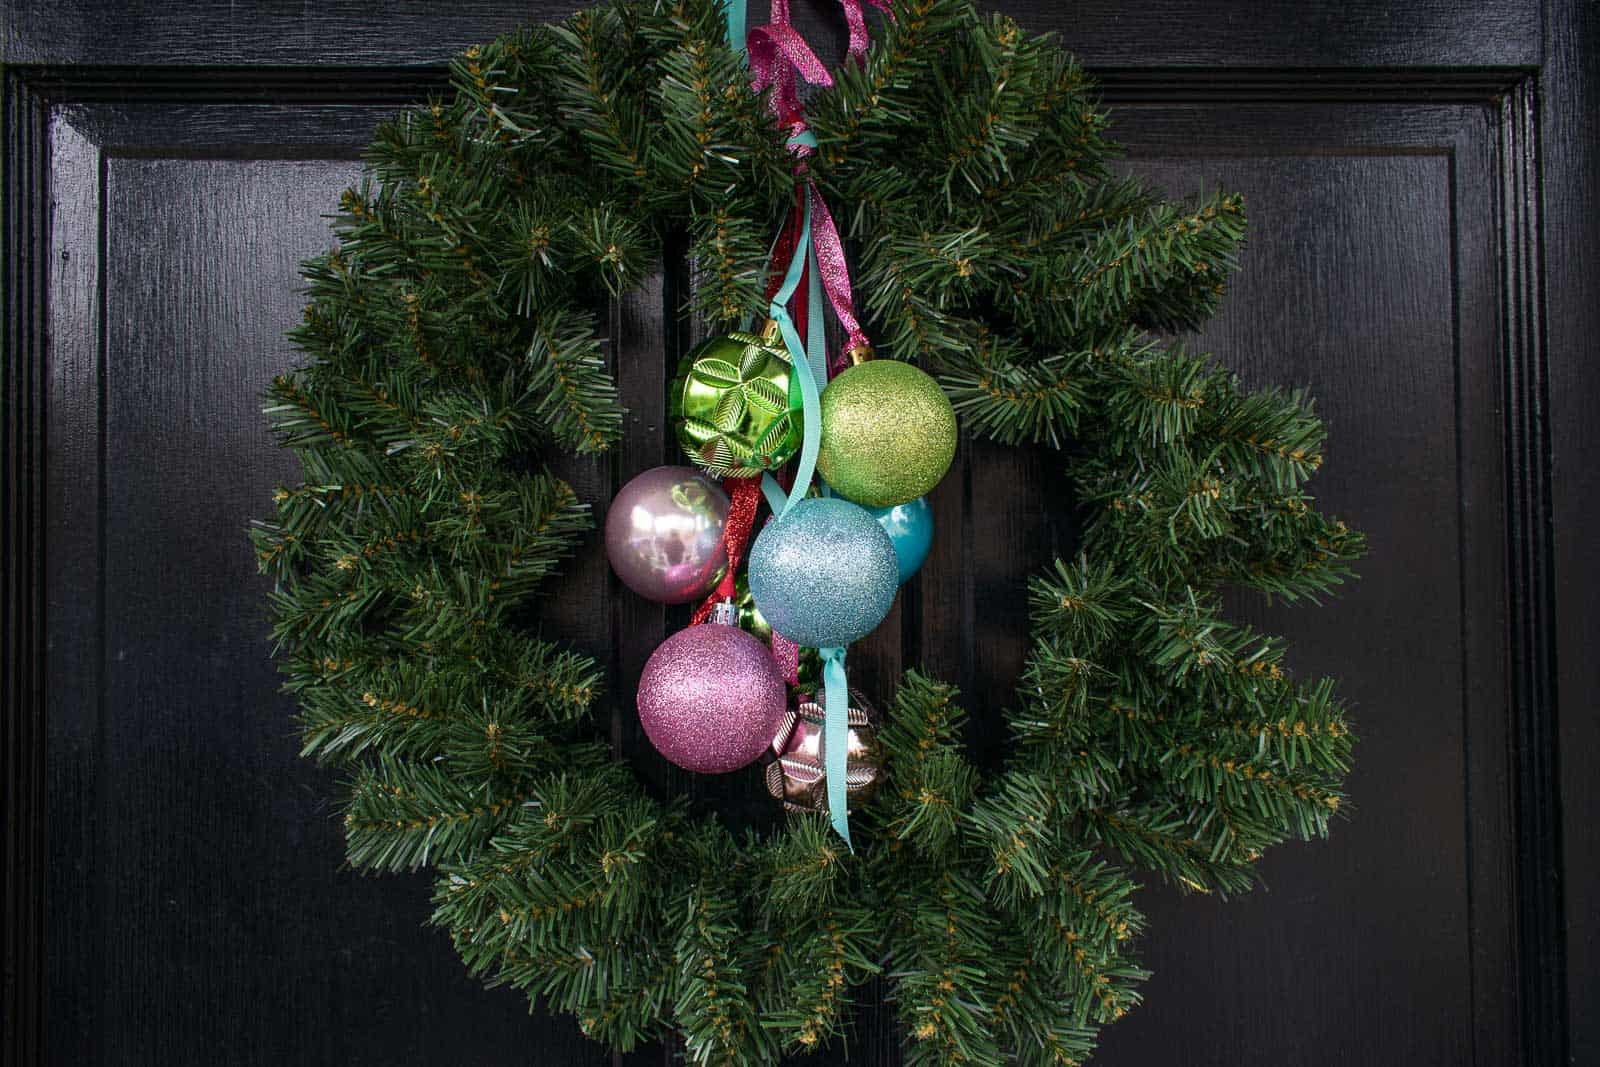 ornaments on wreath